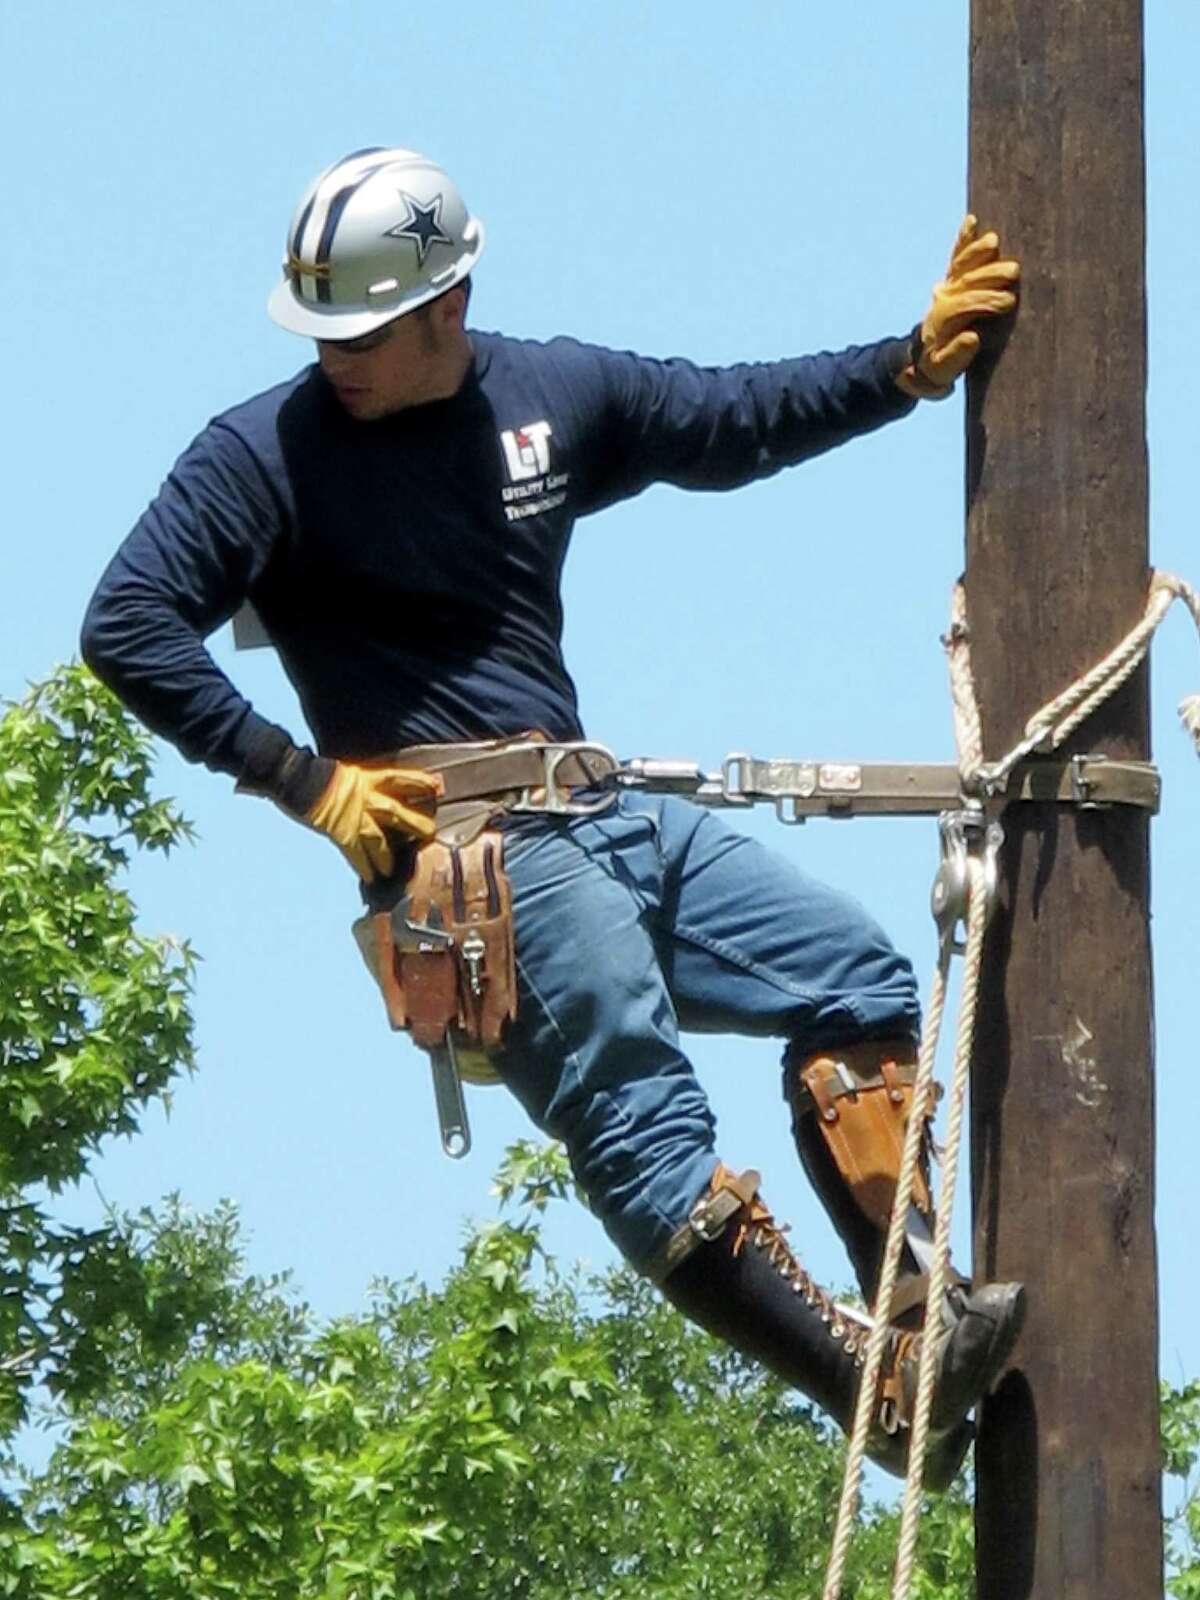 Entergy Texas is donating $50,000 to provide scholarships for students enrolled inn the Utility Line Technology program at Lamar Institute of Technology. Frederick Huff, Utility Superintendent, is a graduate of the LIT program. Photo provided by LIT